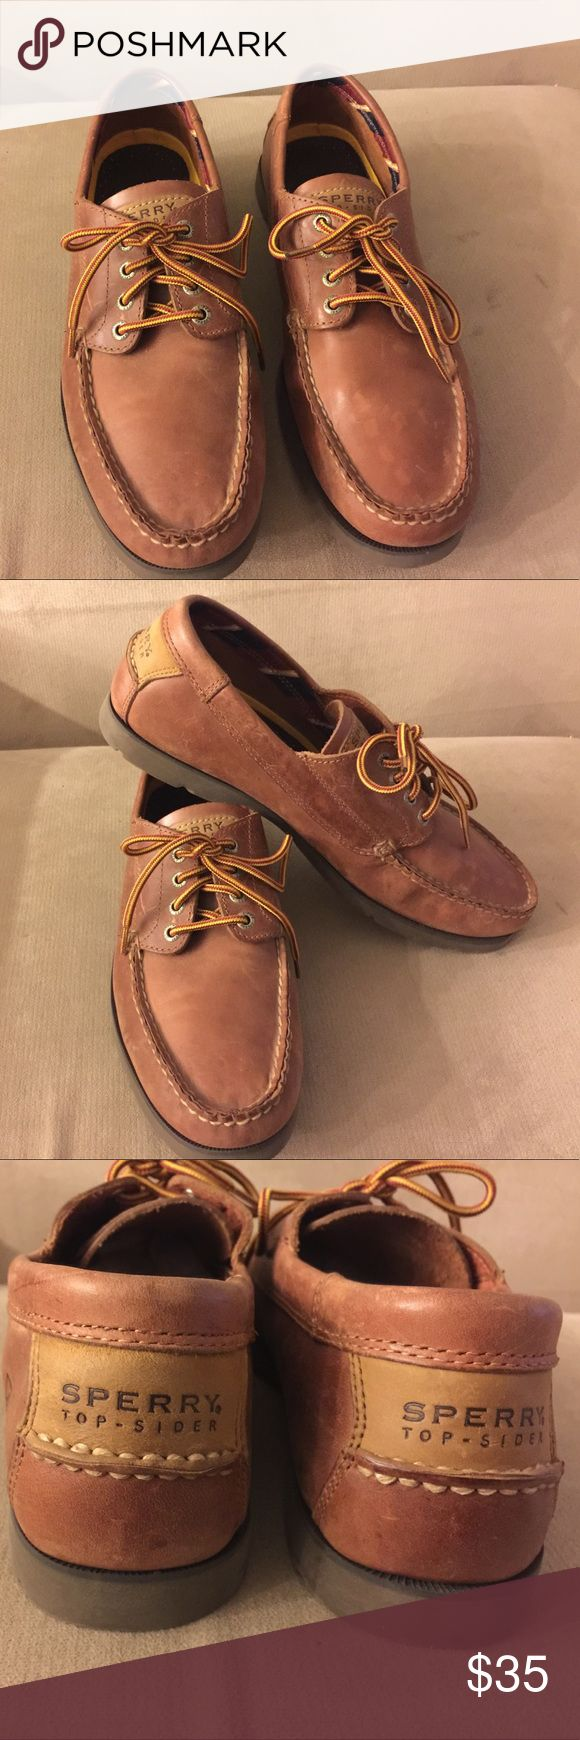 Sperry Top Sider Man's shoes Size 11.5 Used but perfect condition, Lace up, tan color, Leather shoes. Sperry Top-Sider Shoes